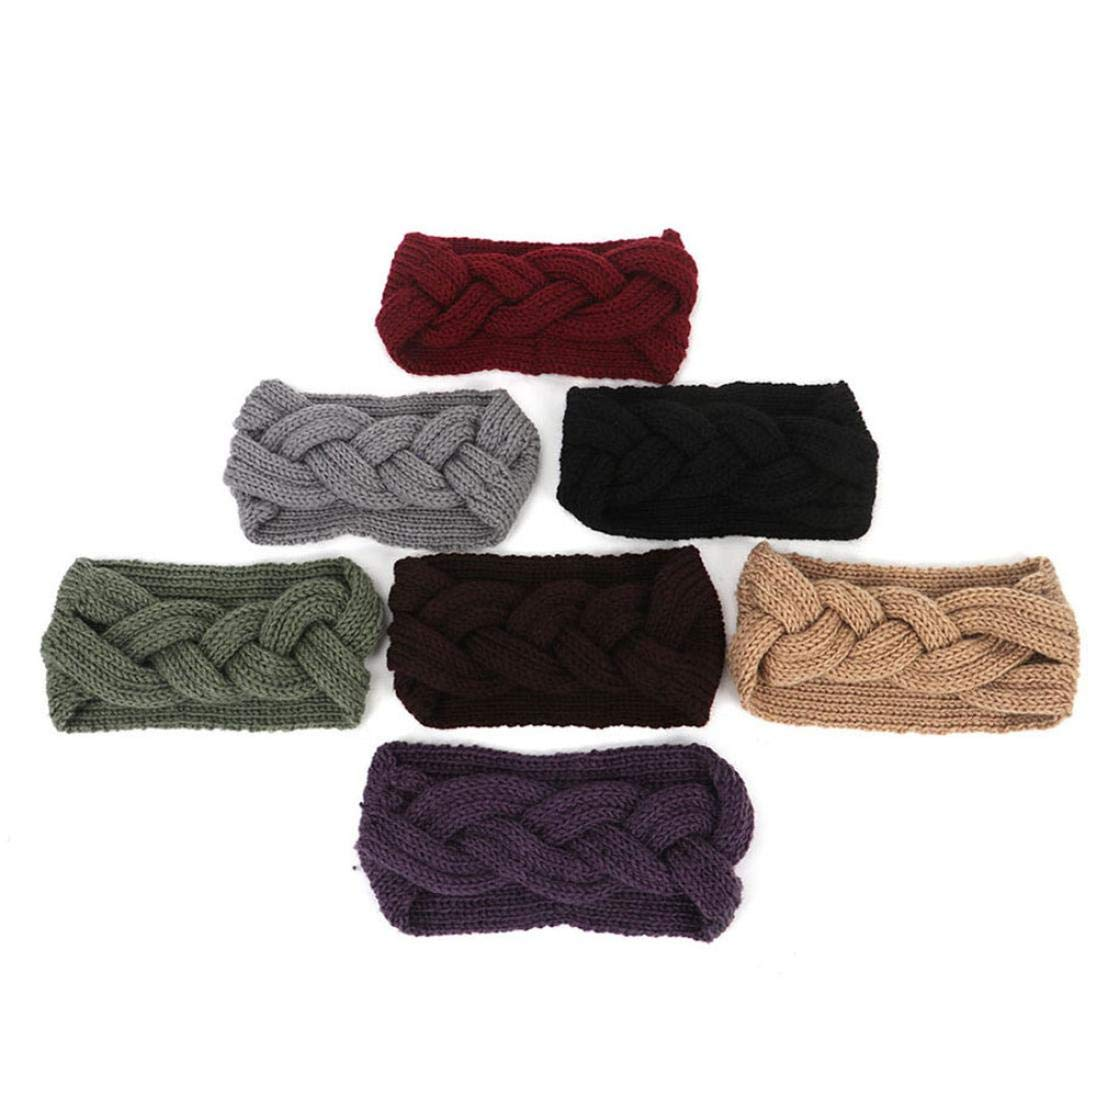 Appoi Headband Headwrap Women Wool Knotted Knitted Headbands Solid Color Elastic Stretchable Winter Warm Head Wrap Wide Non Slip Fashion Hair Accessories (Red) by Appoi Headband Headwrap (Image #4)